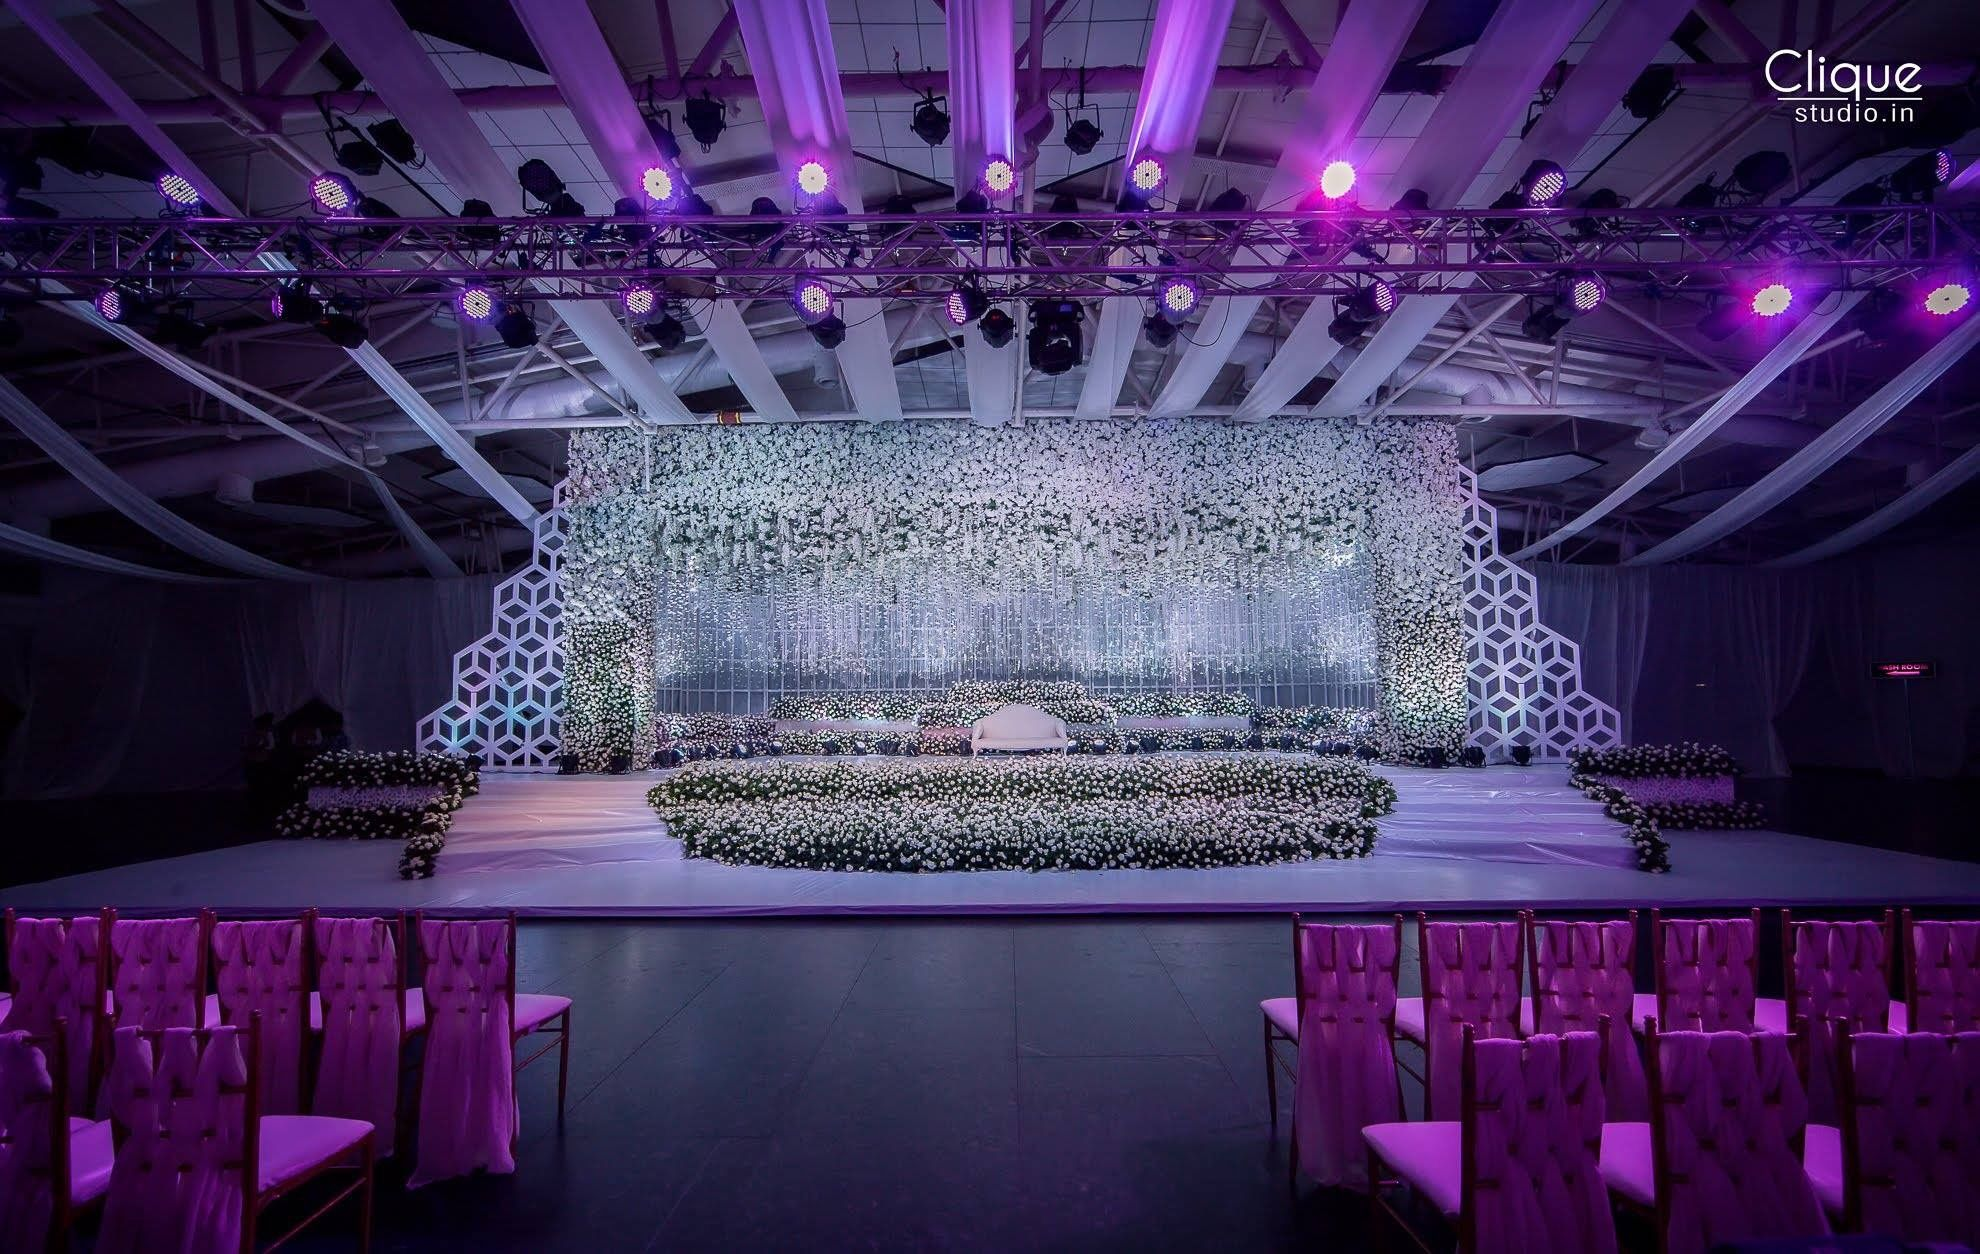 Wedding decorations stage backdrops october 2018 Pin by Sarayu Paspunuri on Wedding decors in   Pinterest